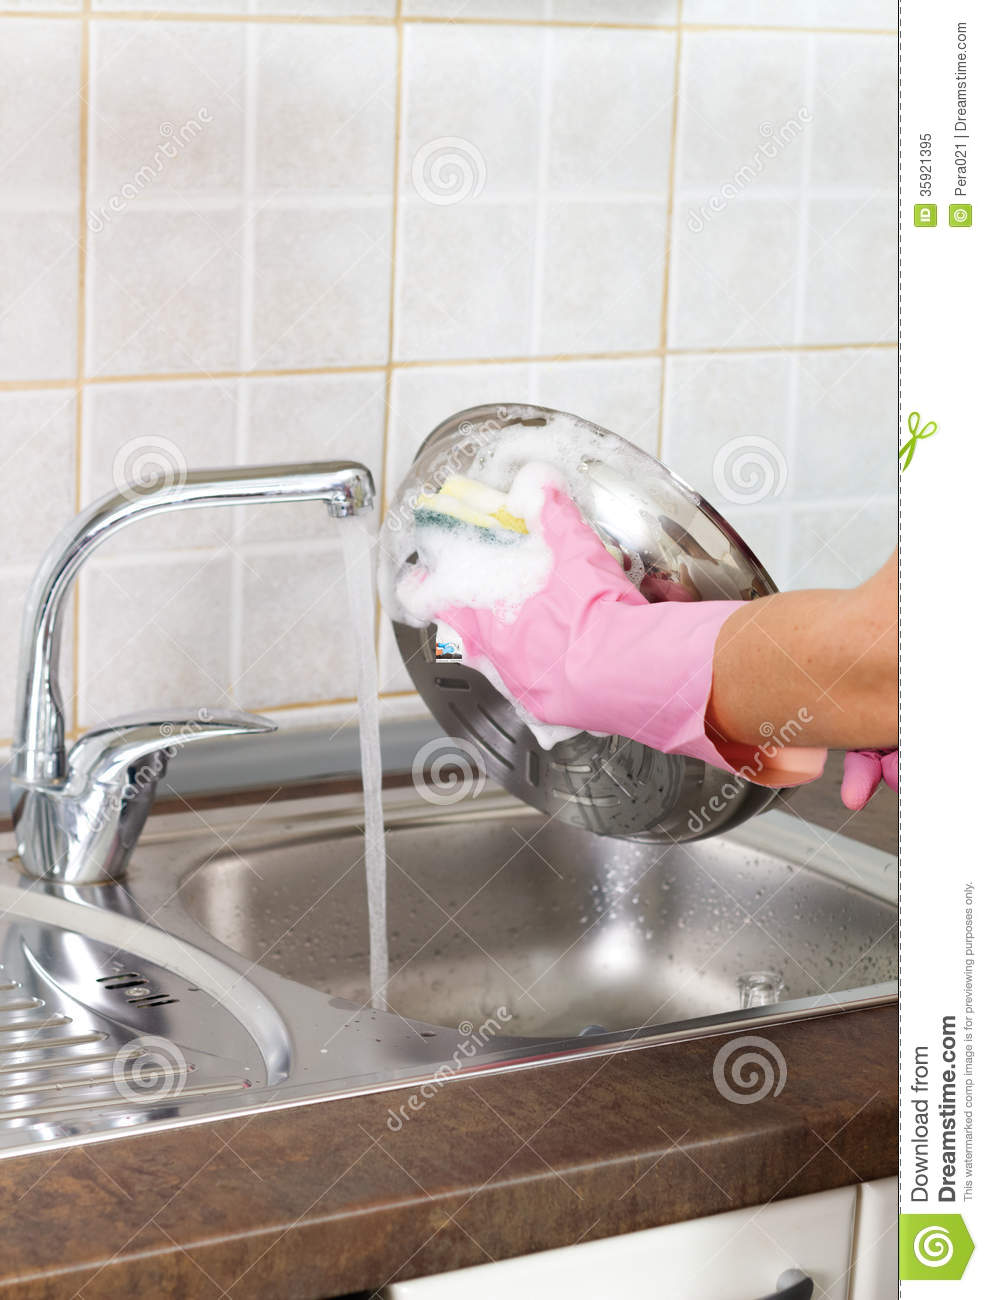 Kitchen Sink With Clean Dishes simple kitchen sink with clean dishes an empty plastic bin in your